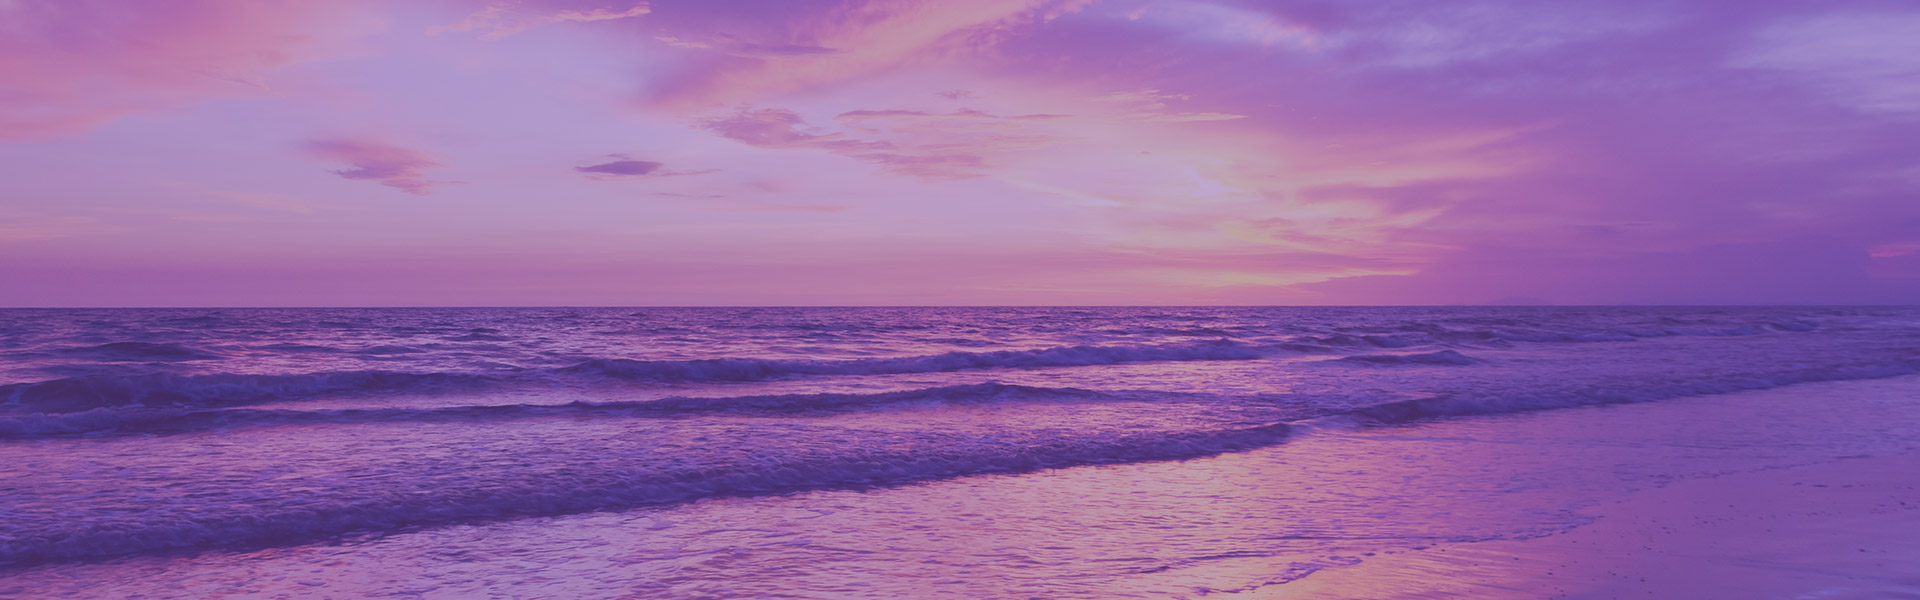 Purple sunset on shore of beach as dusk